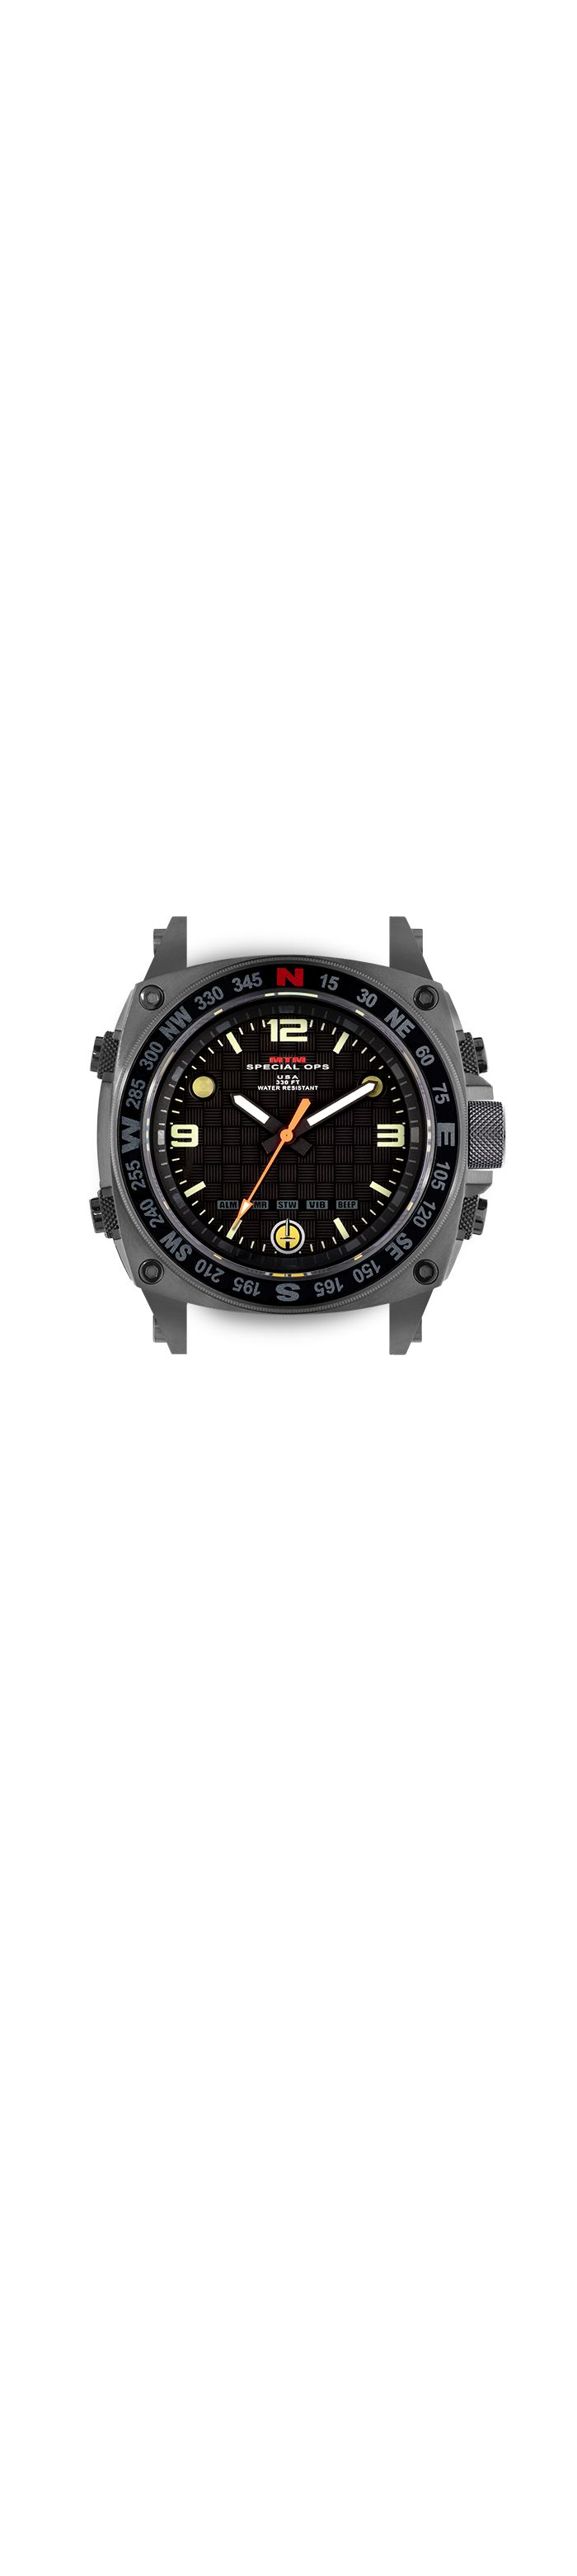 Digital Analog Watch | Gray Silencer | MTM Special Ops Watches